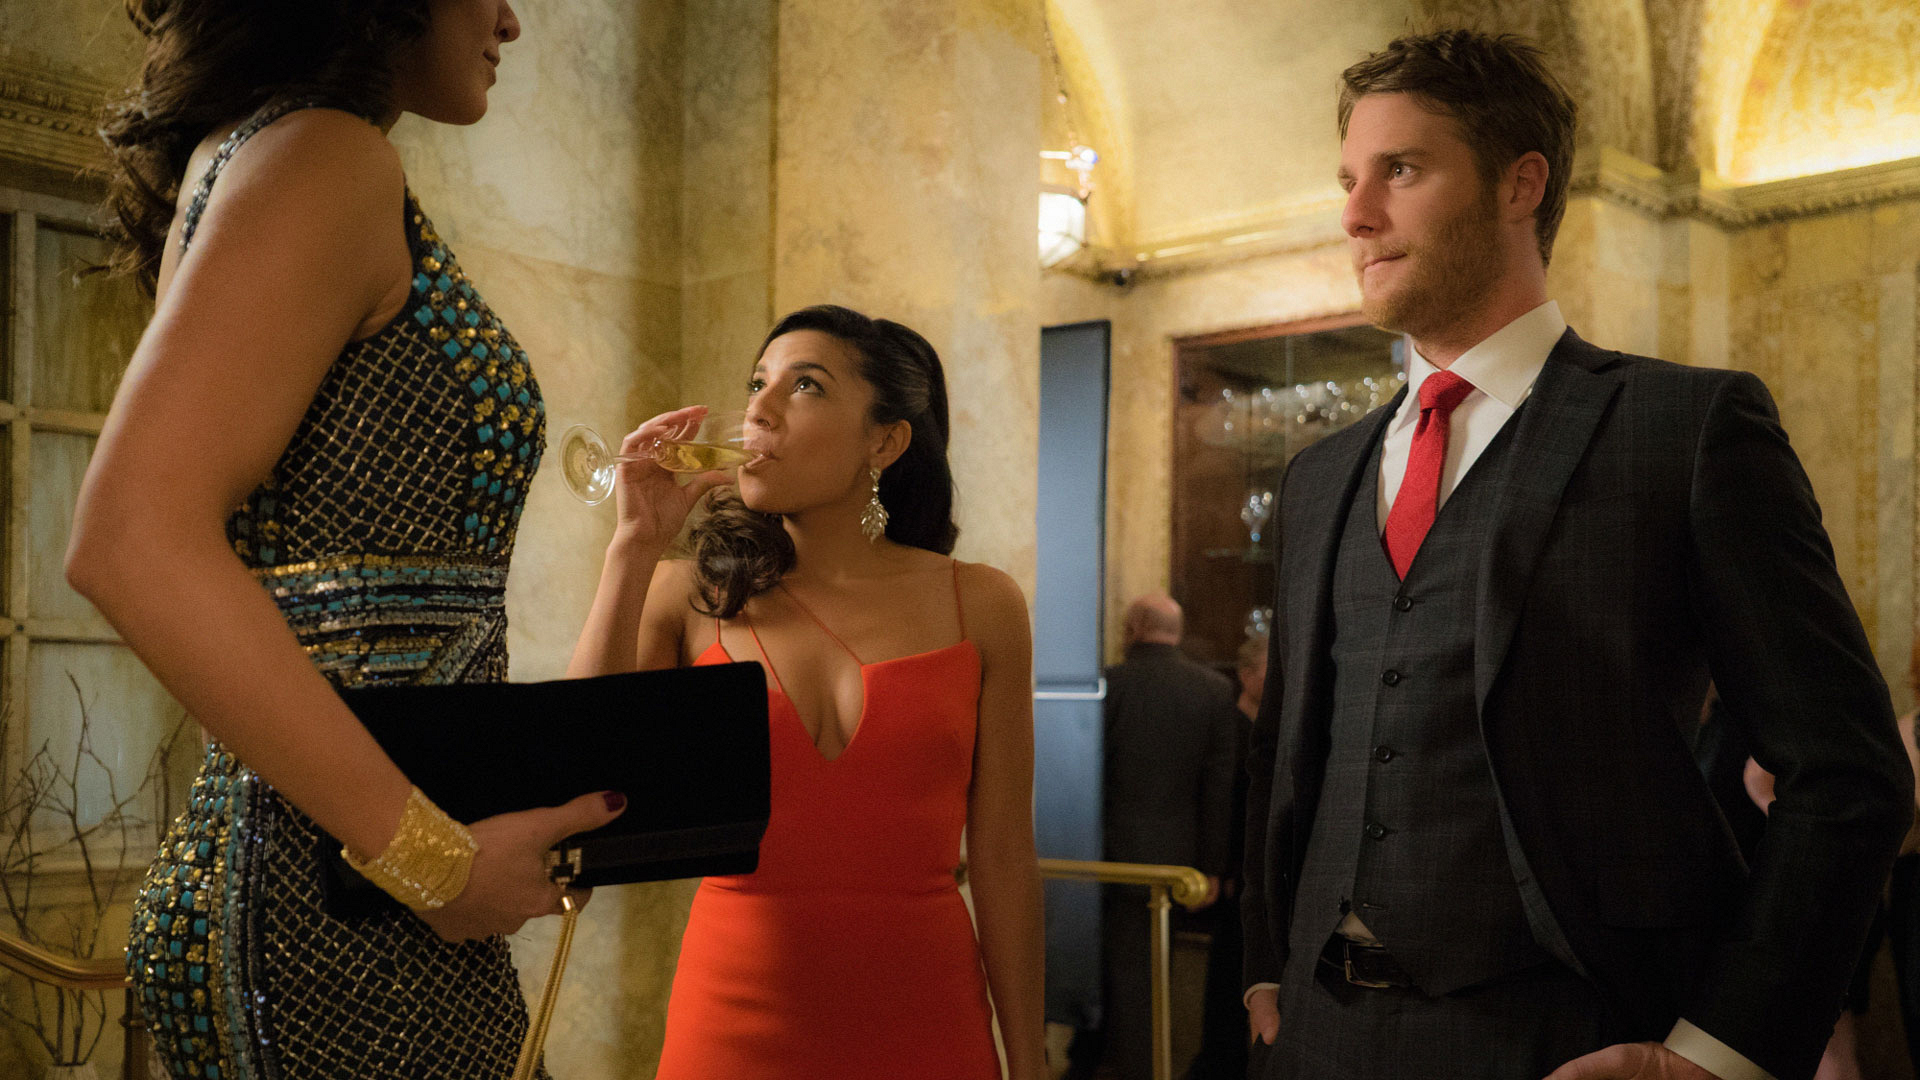 Christina Vidal as Lucy Church and Jake McDorman as Brian Finch